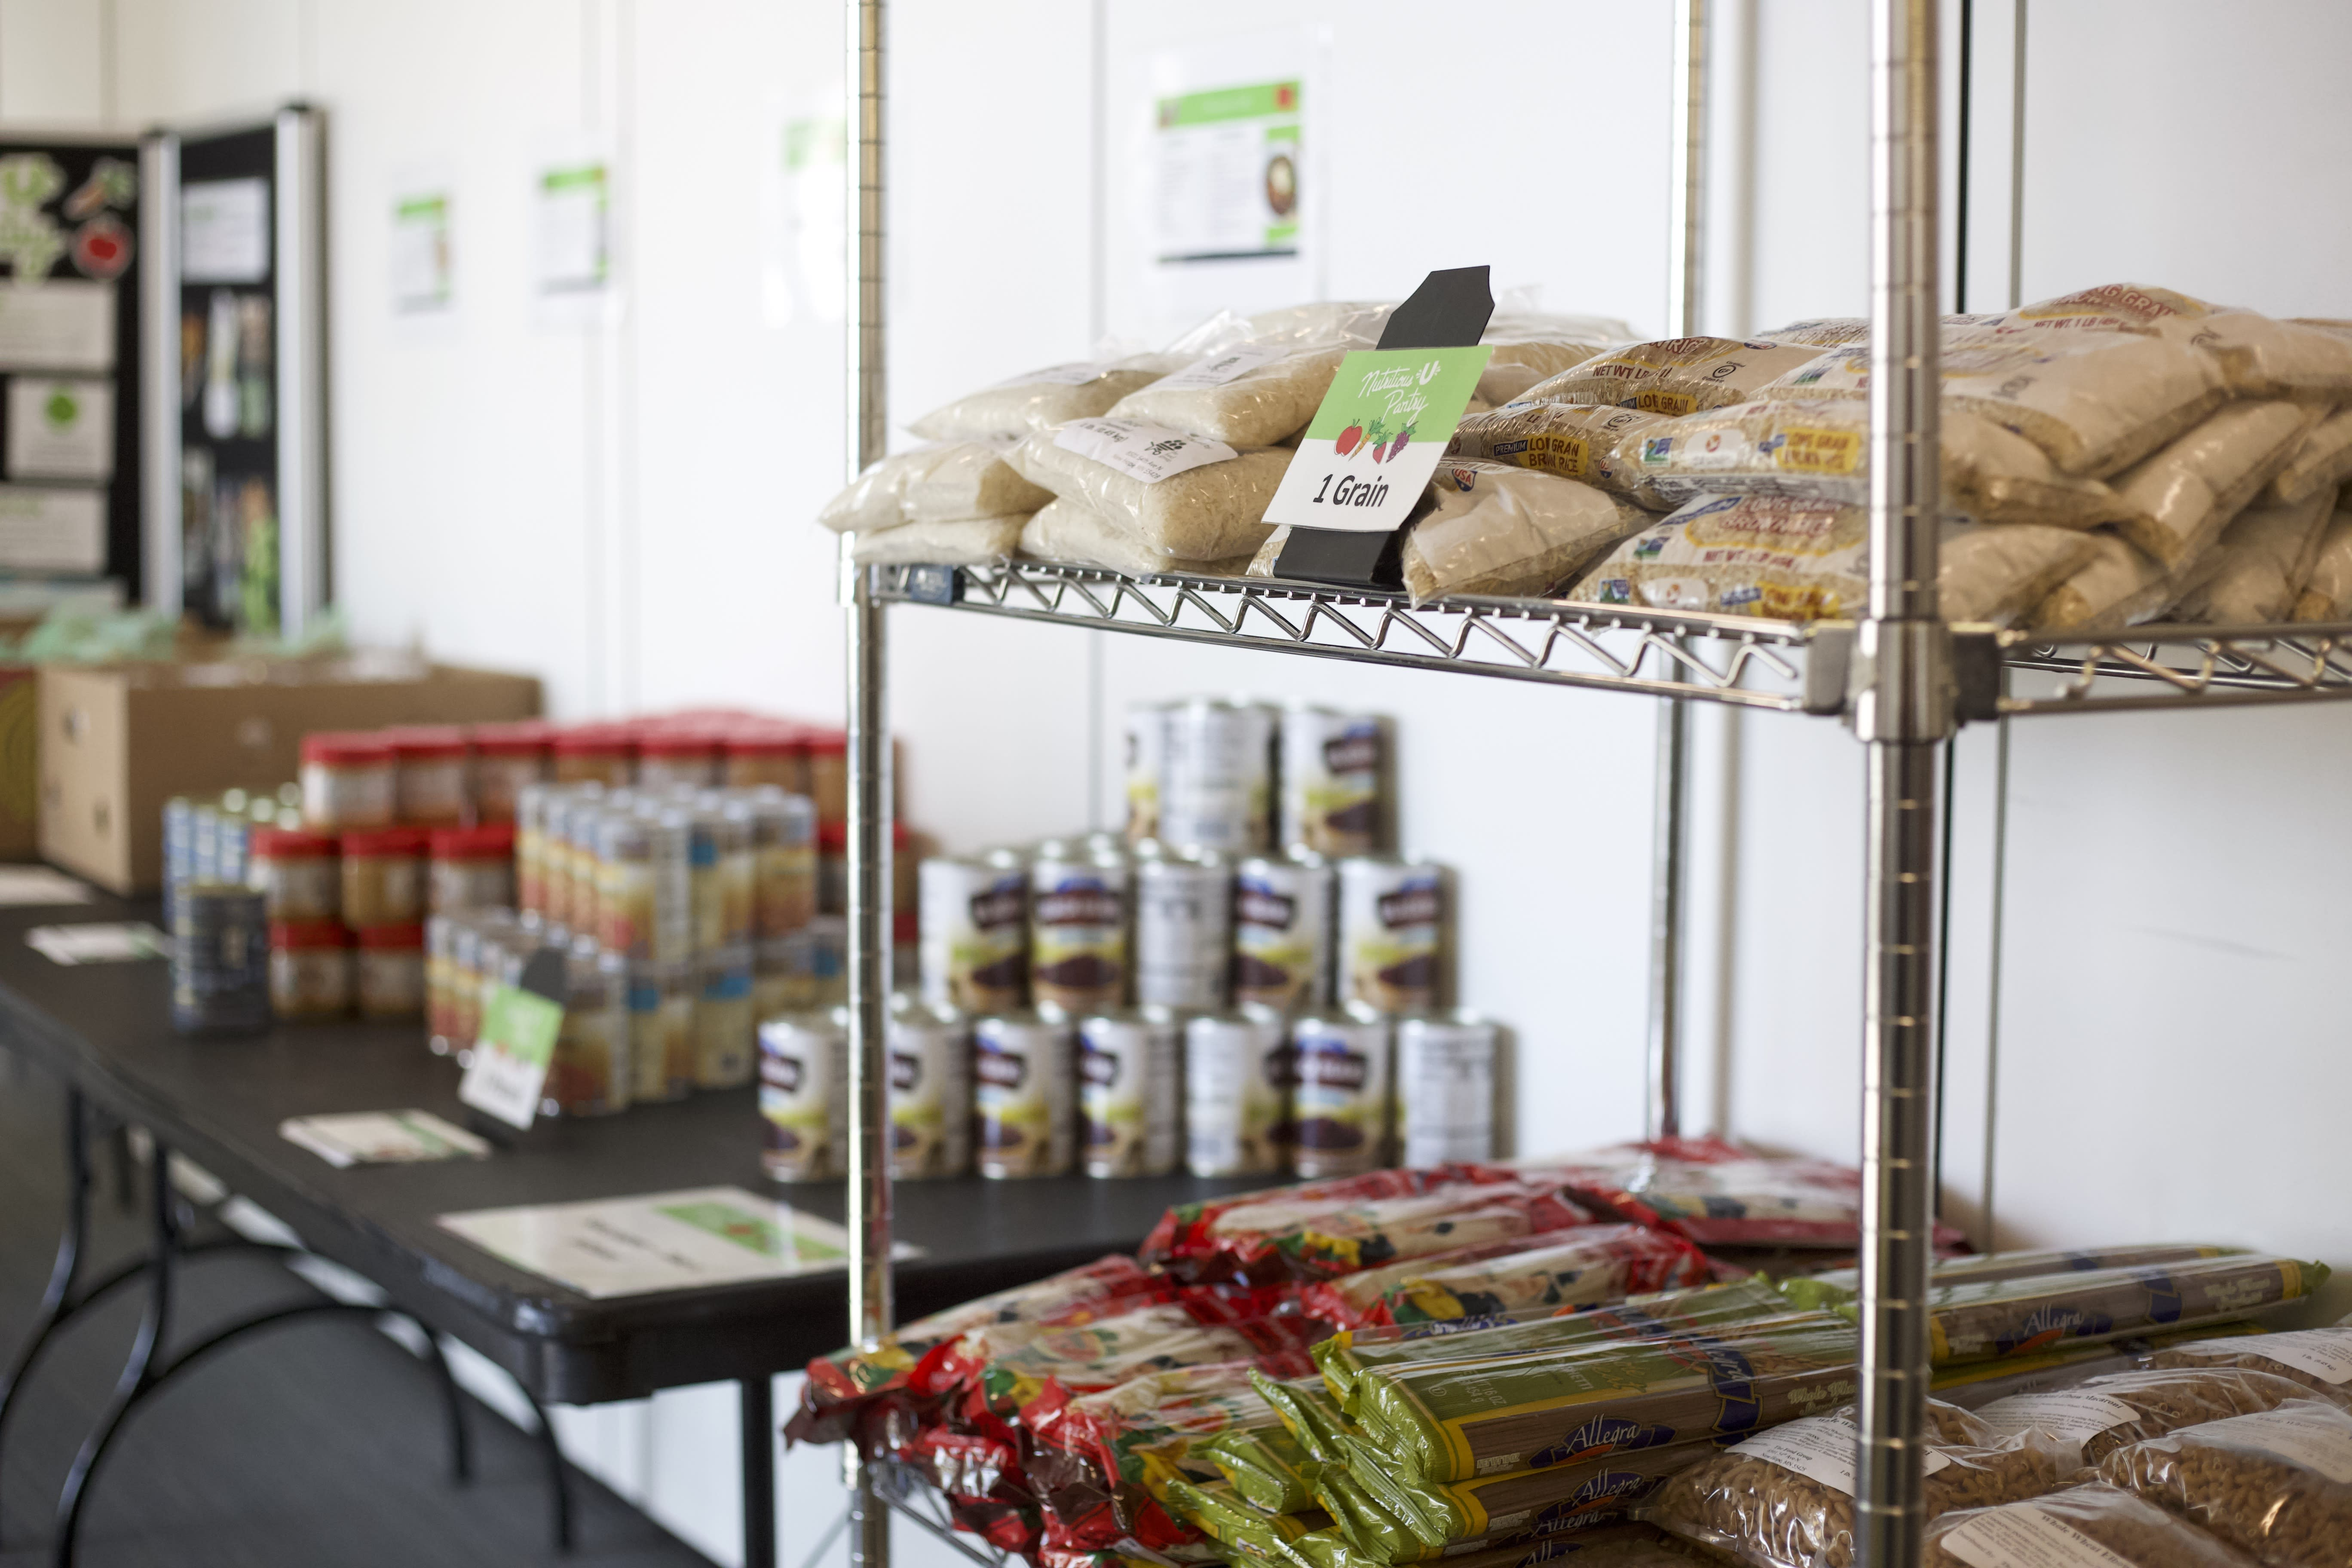 Although a majority of University of Minnesota's classes are online this fall, its food pantry, Nutrition U, plans to re-open on September 23 and will double the frequency that it is open each month. (Photo Courtesy: University of Minnesota)